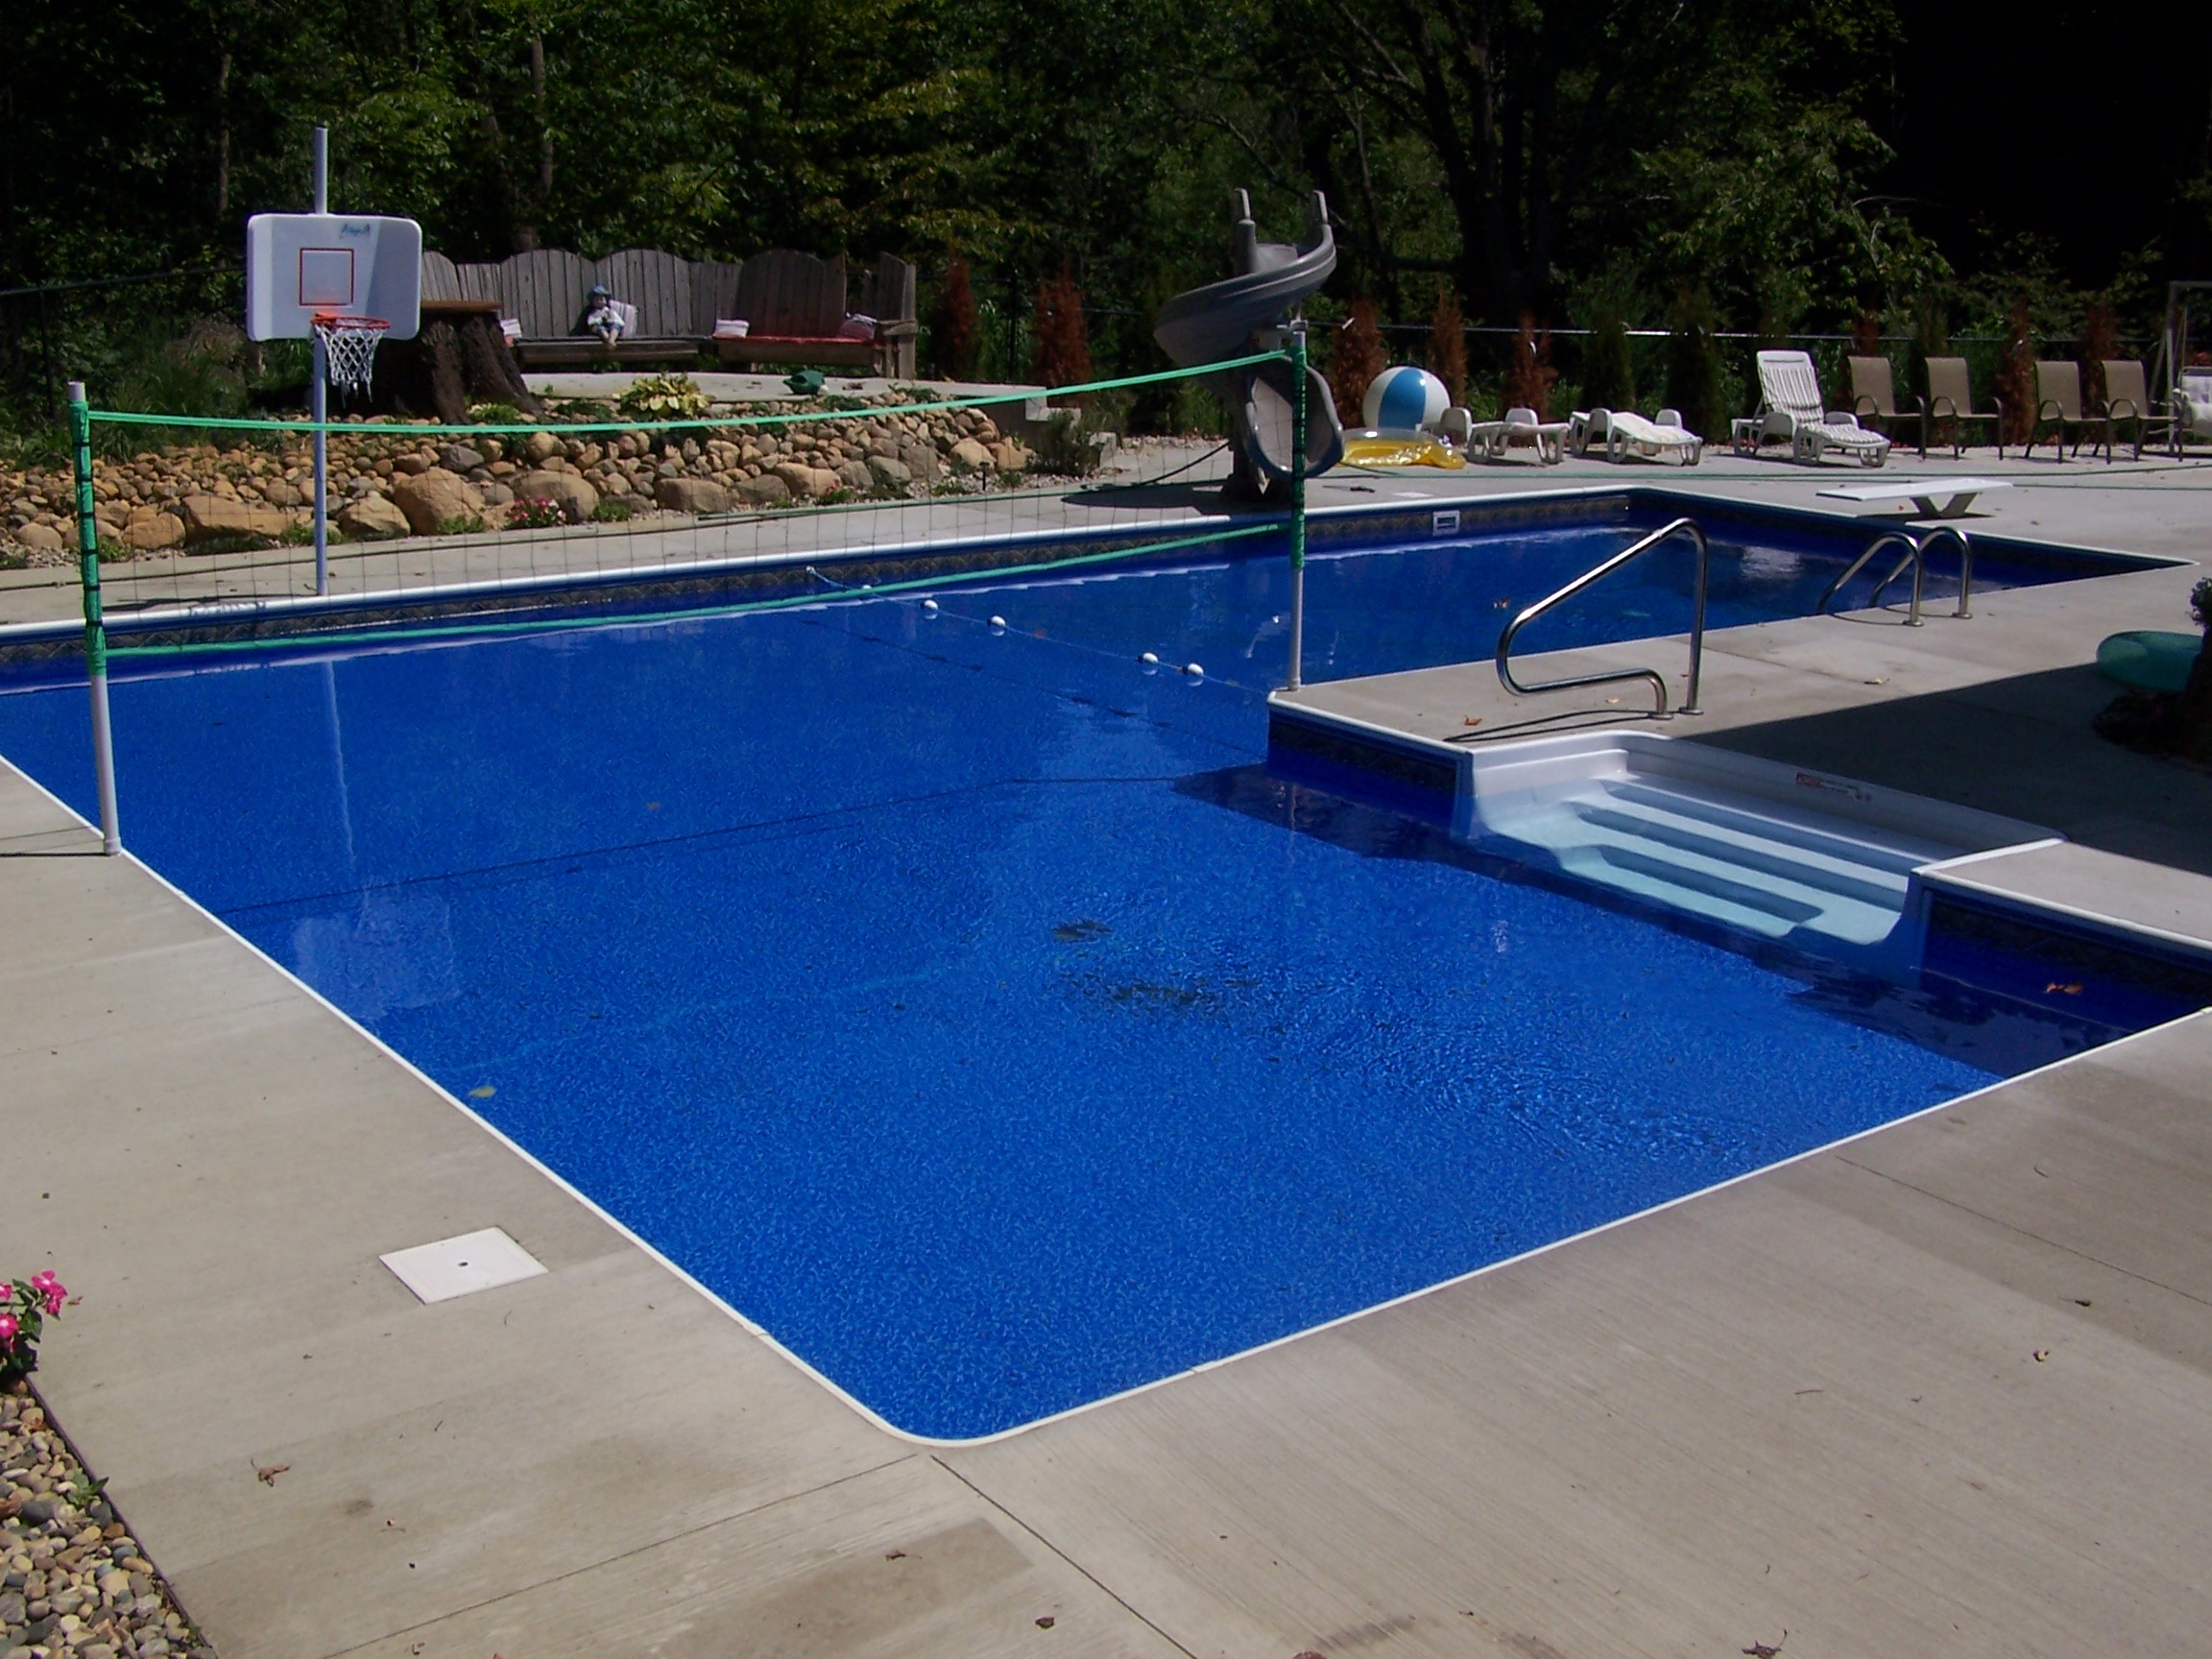 Cove pools in grand rapids mi swimming pool contractors for Swimming pool dealers